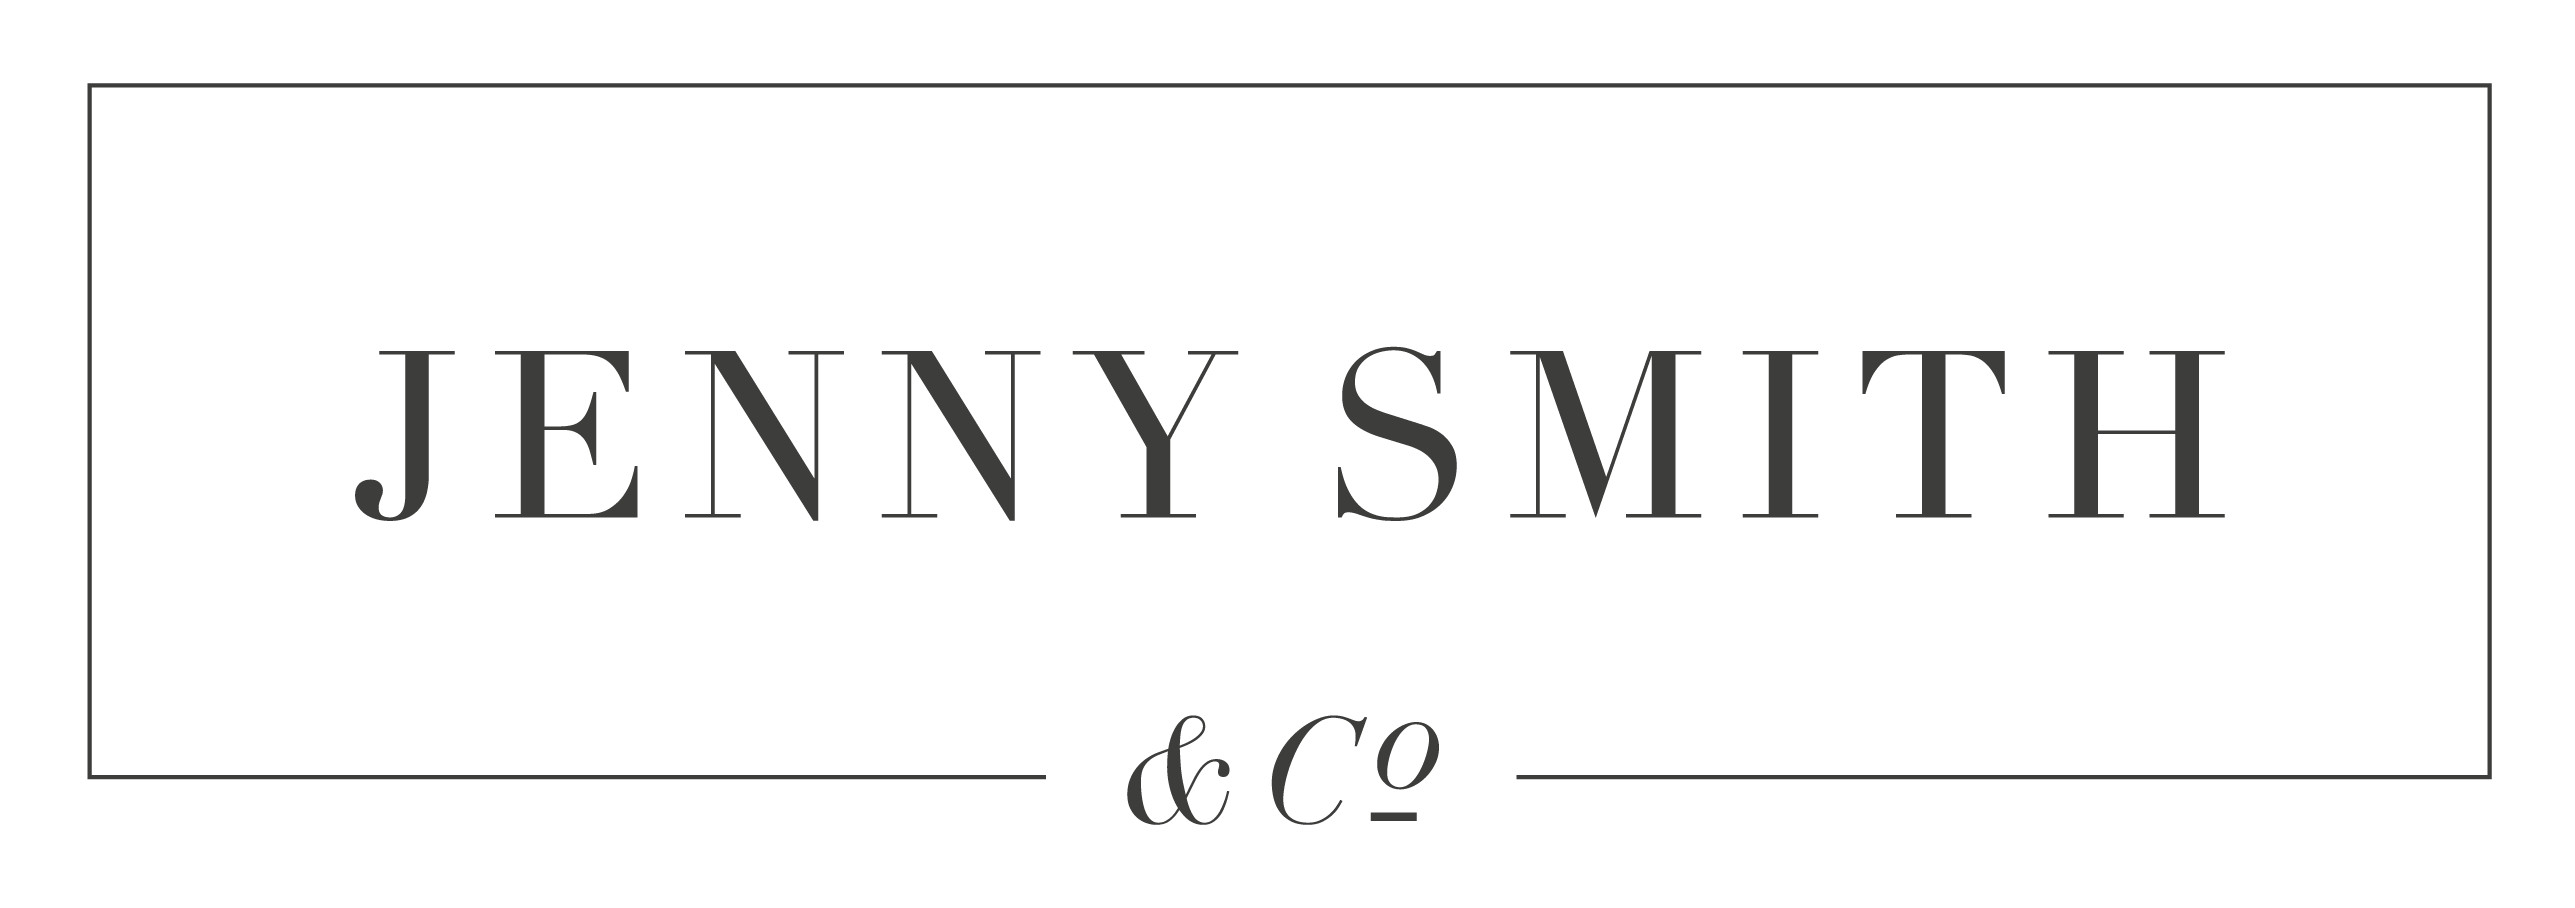 Jenny Smith & Co.